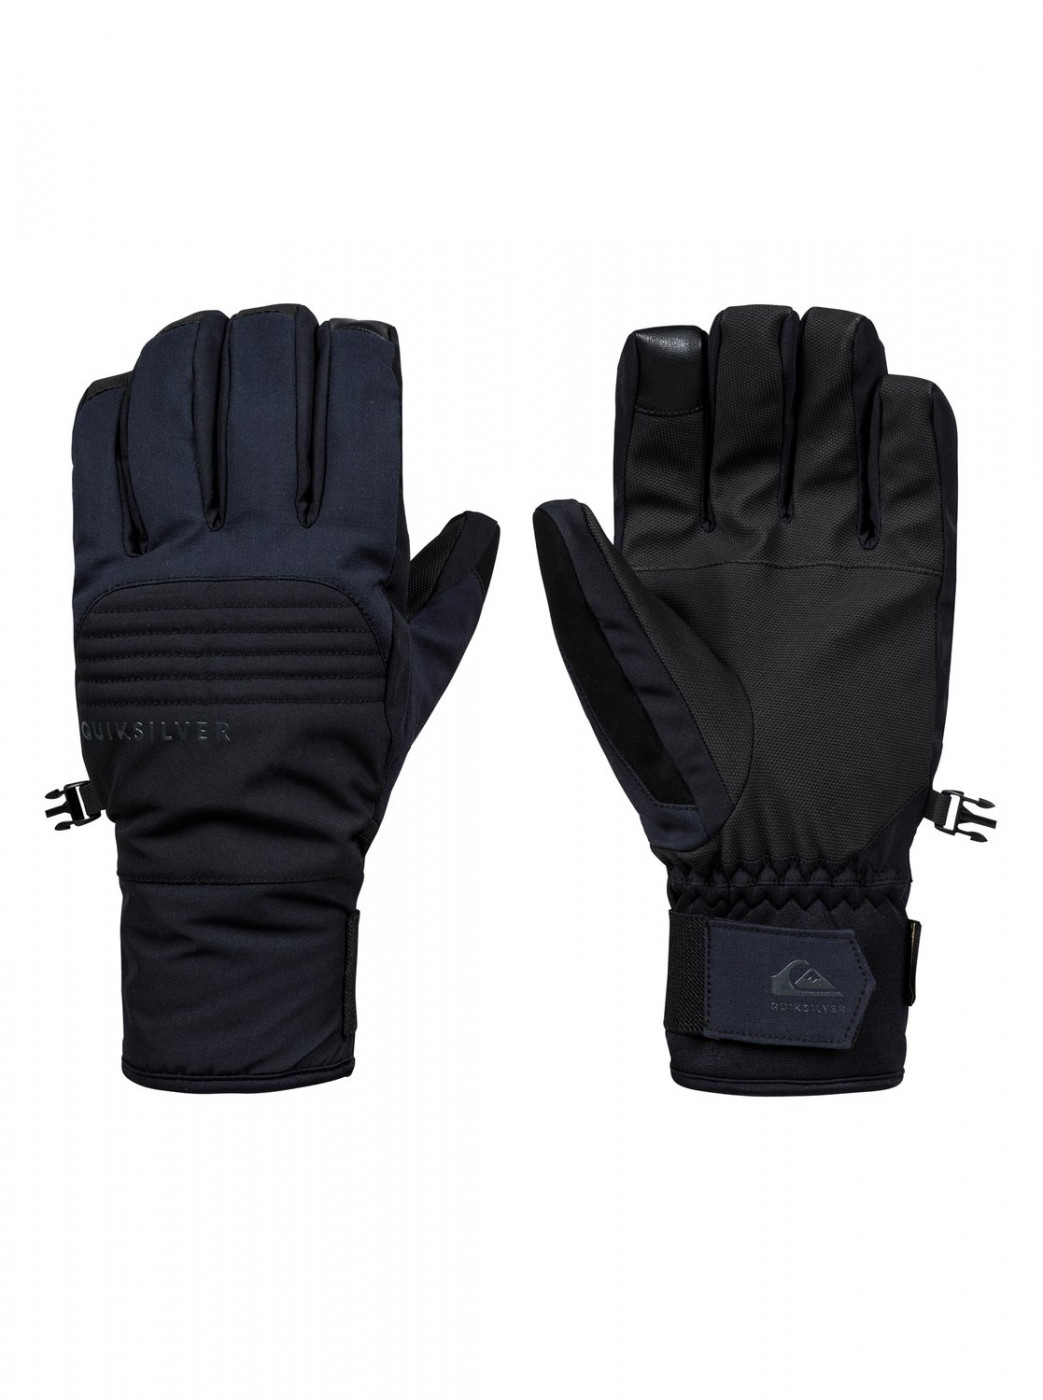 Men's winter gloves QUIKSILVER HILL GORE GLOVE